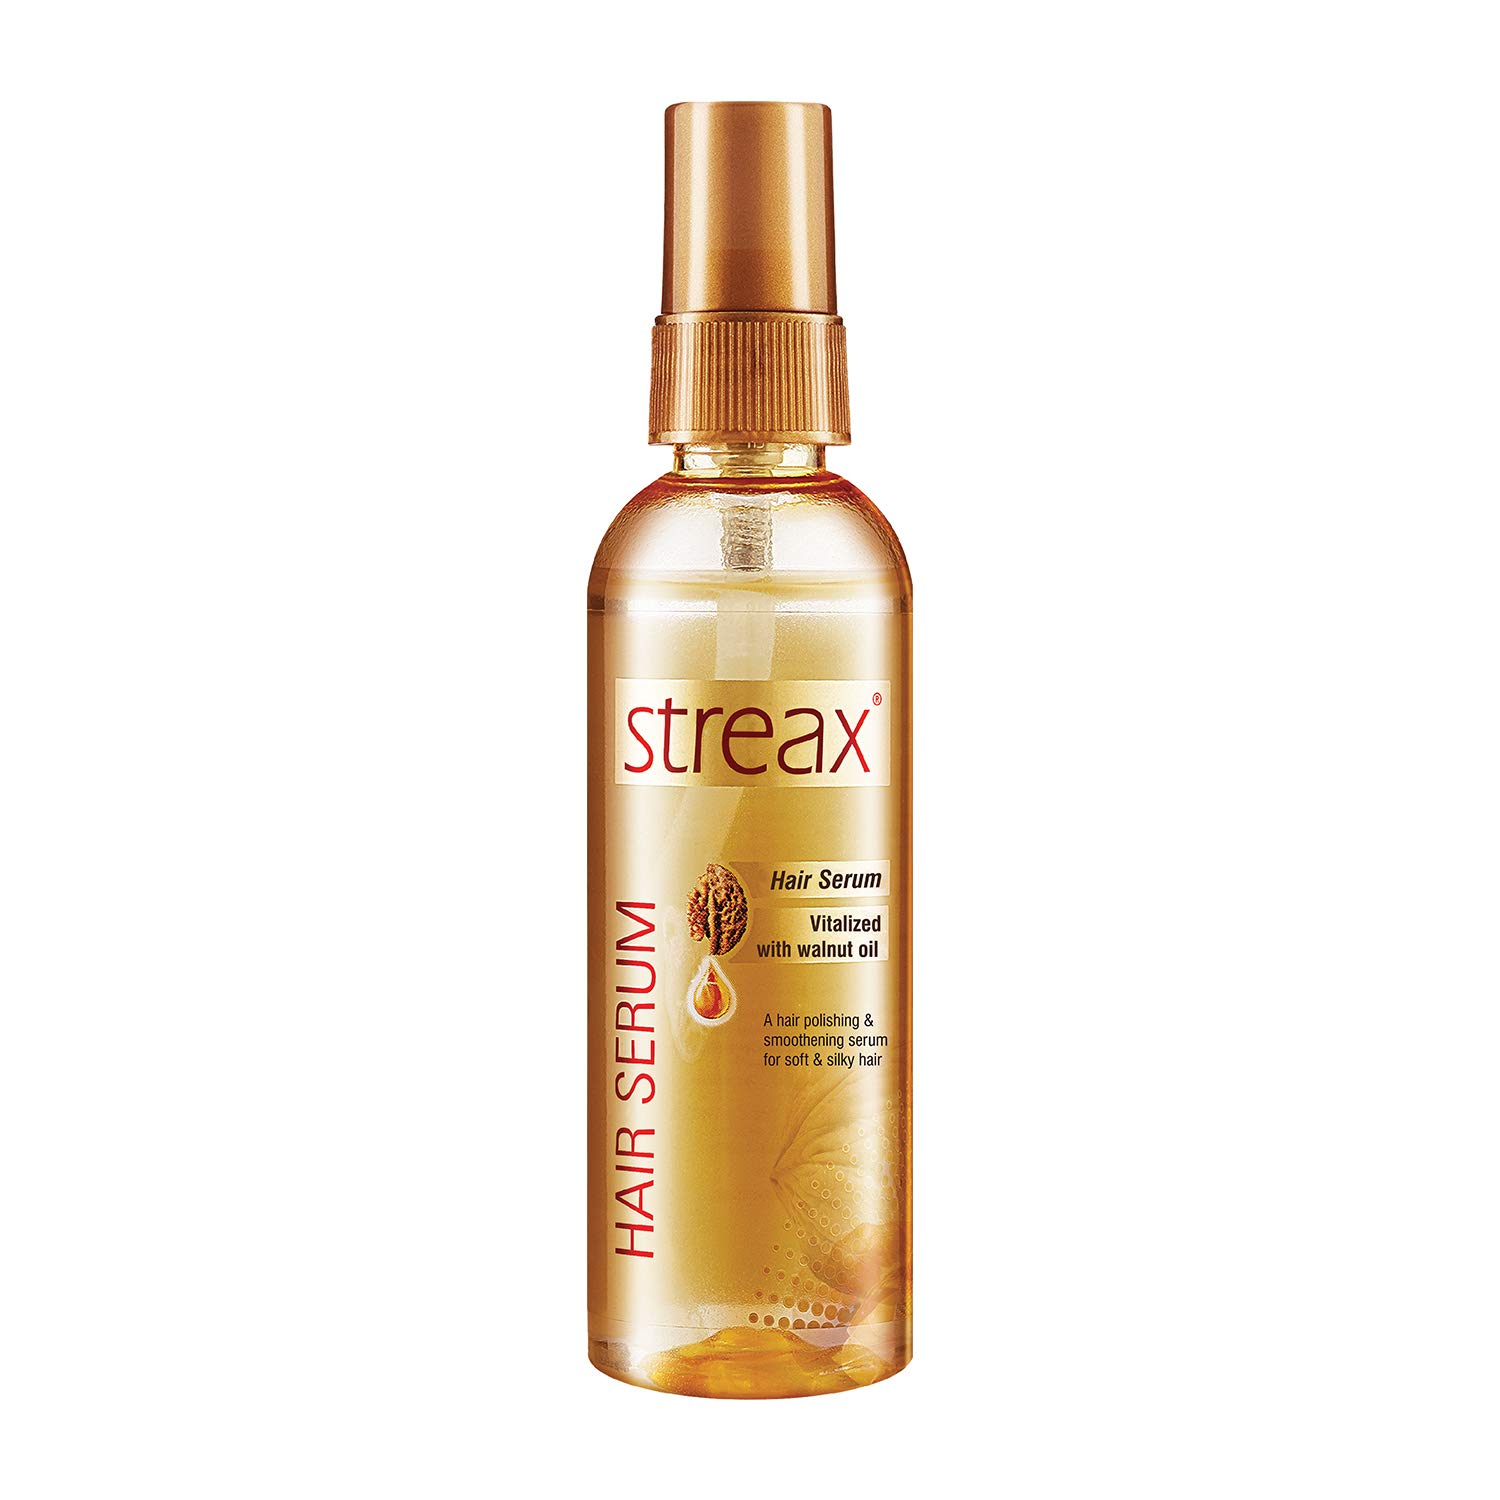 Streax Hair Serum for Women & Men   Contains Walnut Oil   Instant Shine & Smoothness   Regular use Hair Serum for Dry & Wet Hair   Gives frizz – free Hair   Soft & Silky Touch,100ml